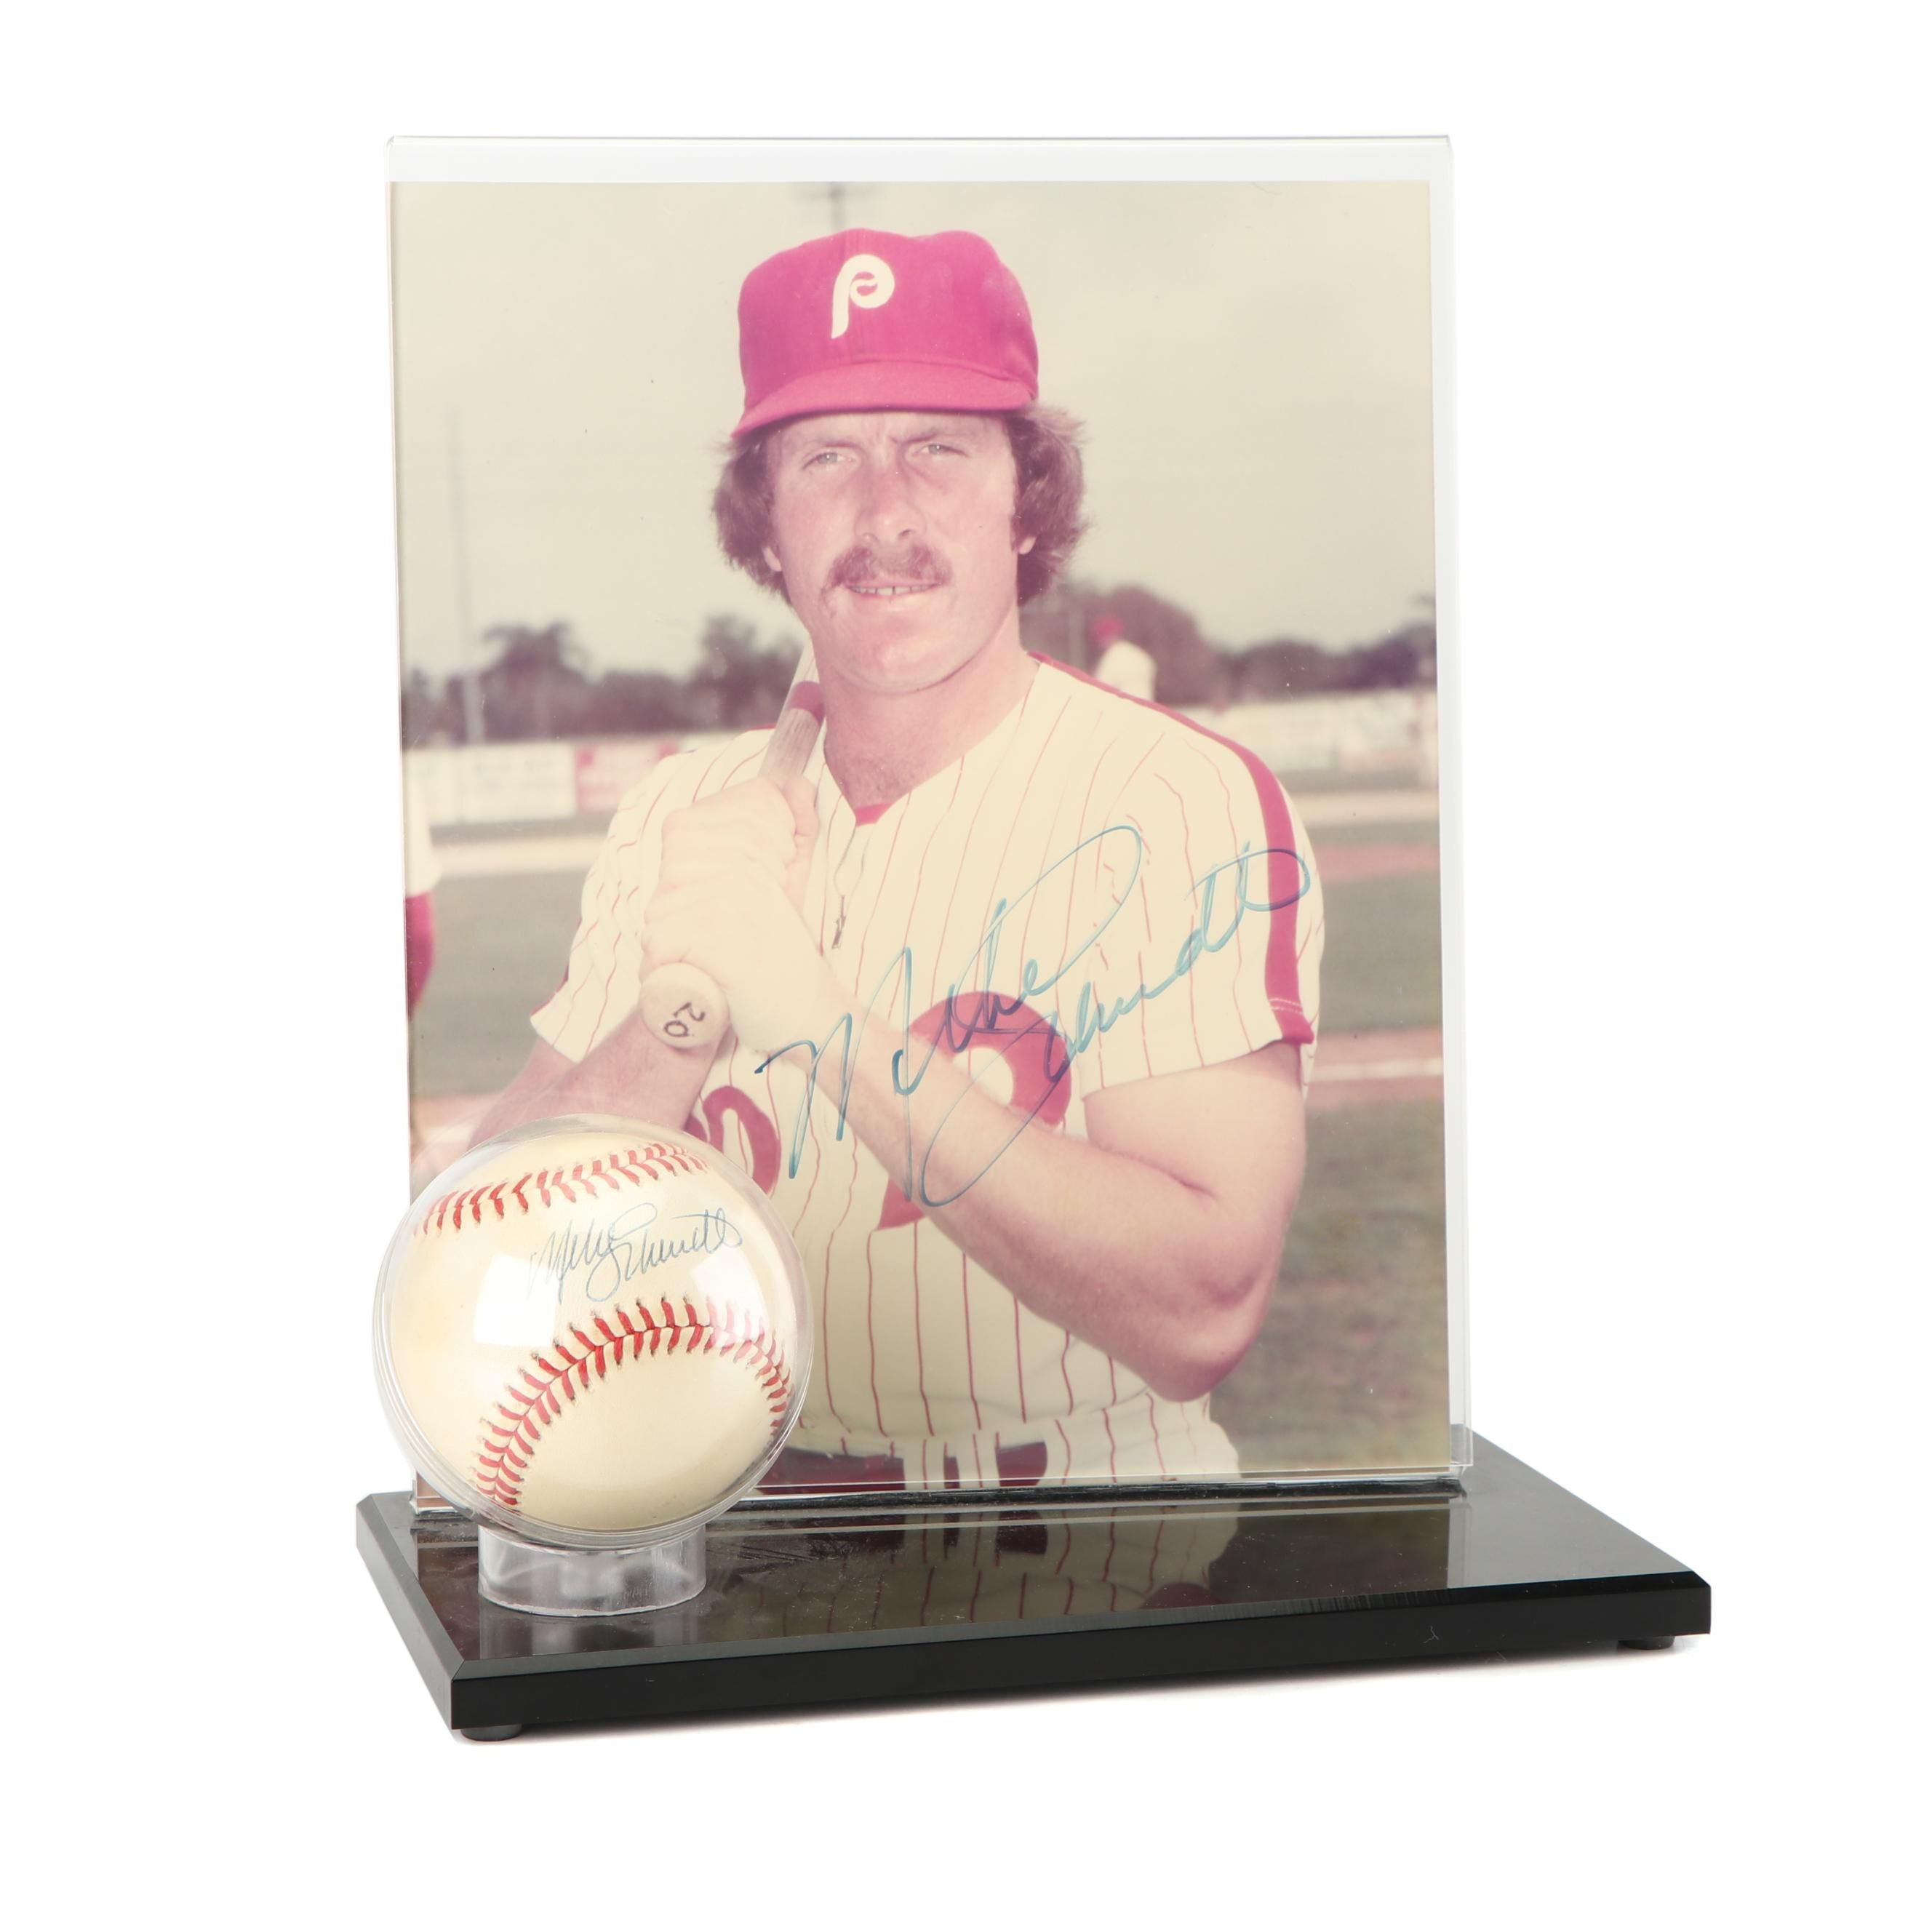 Mike Schmidt Autographed Baseball and Photograph